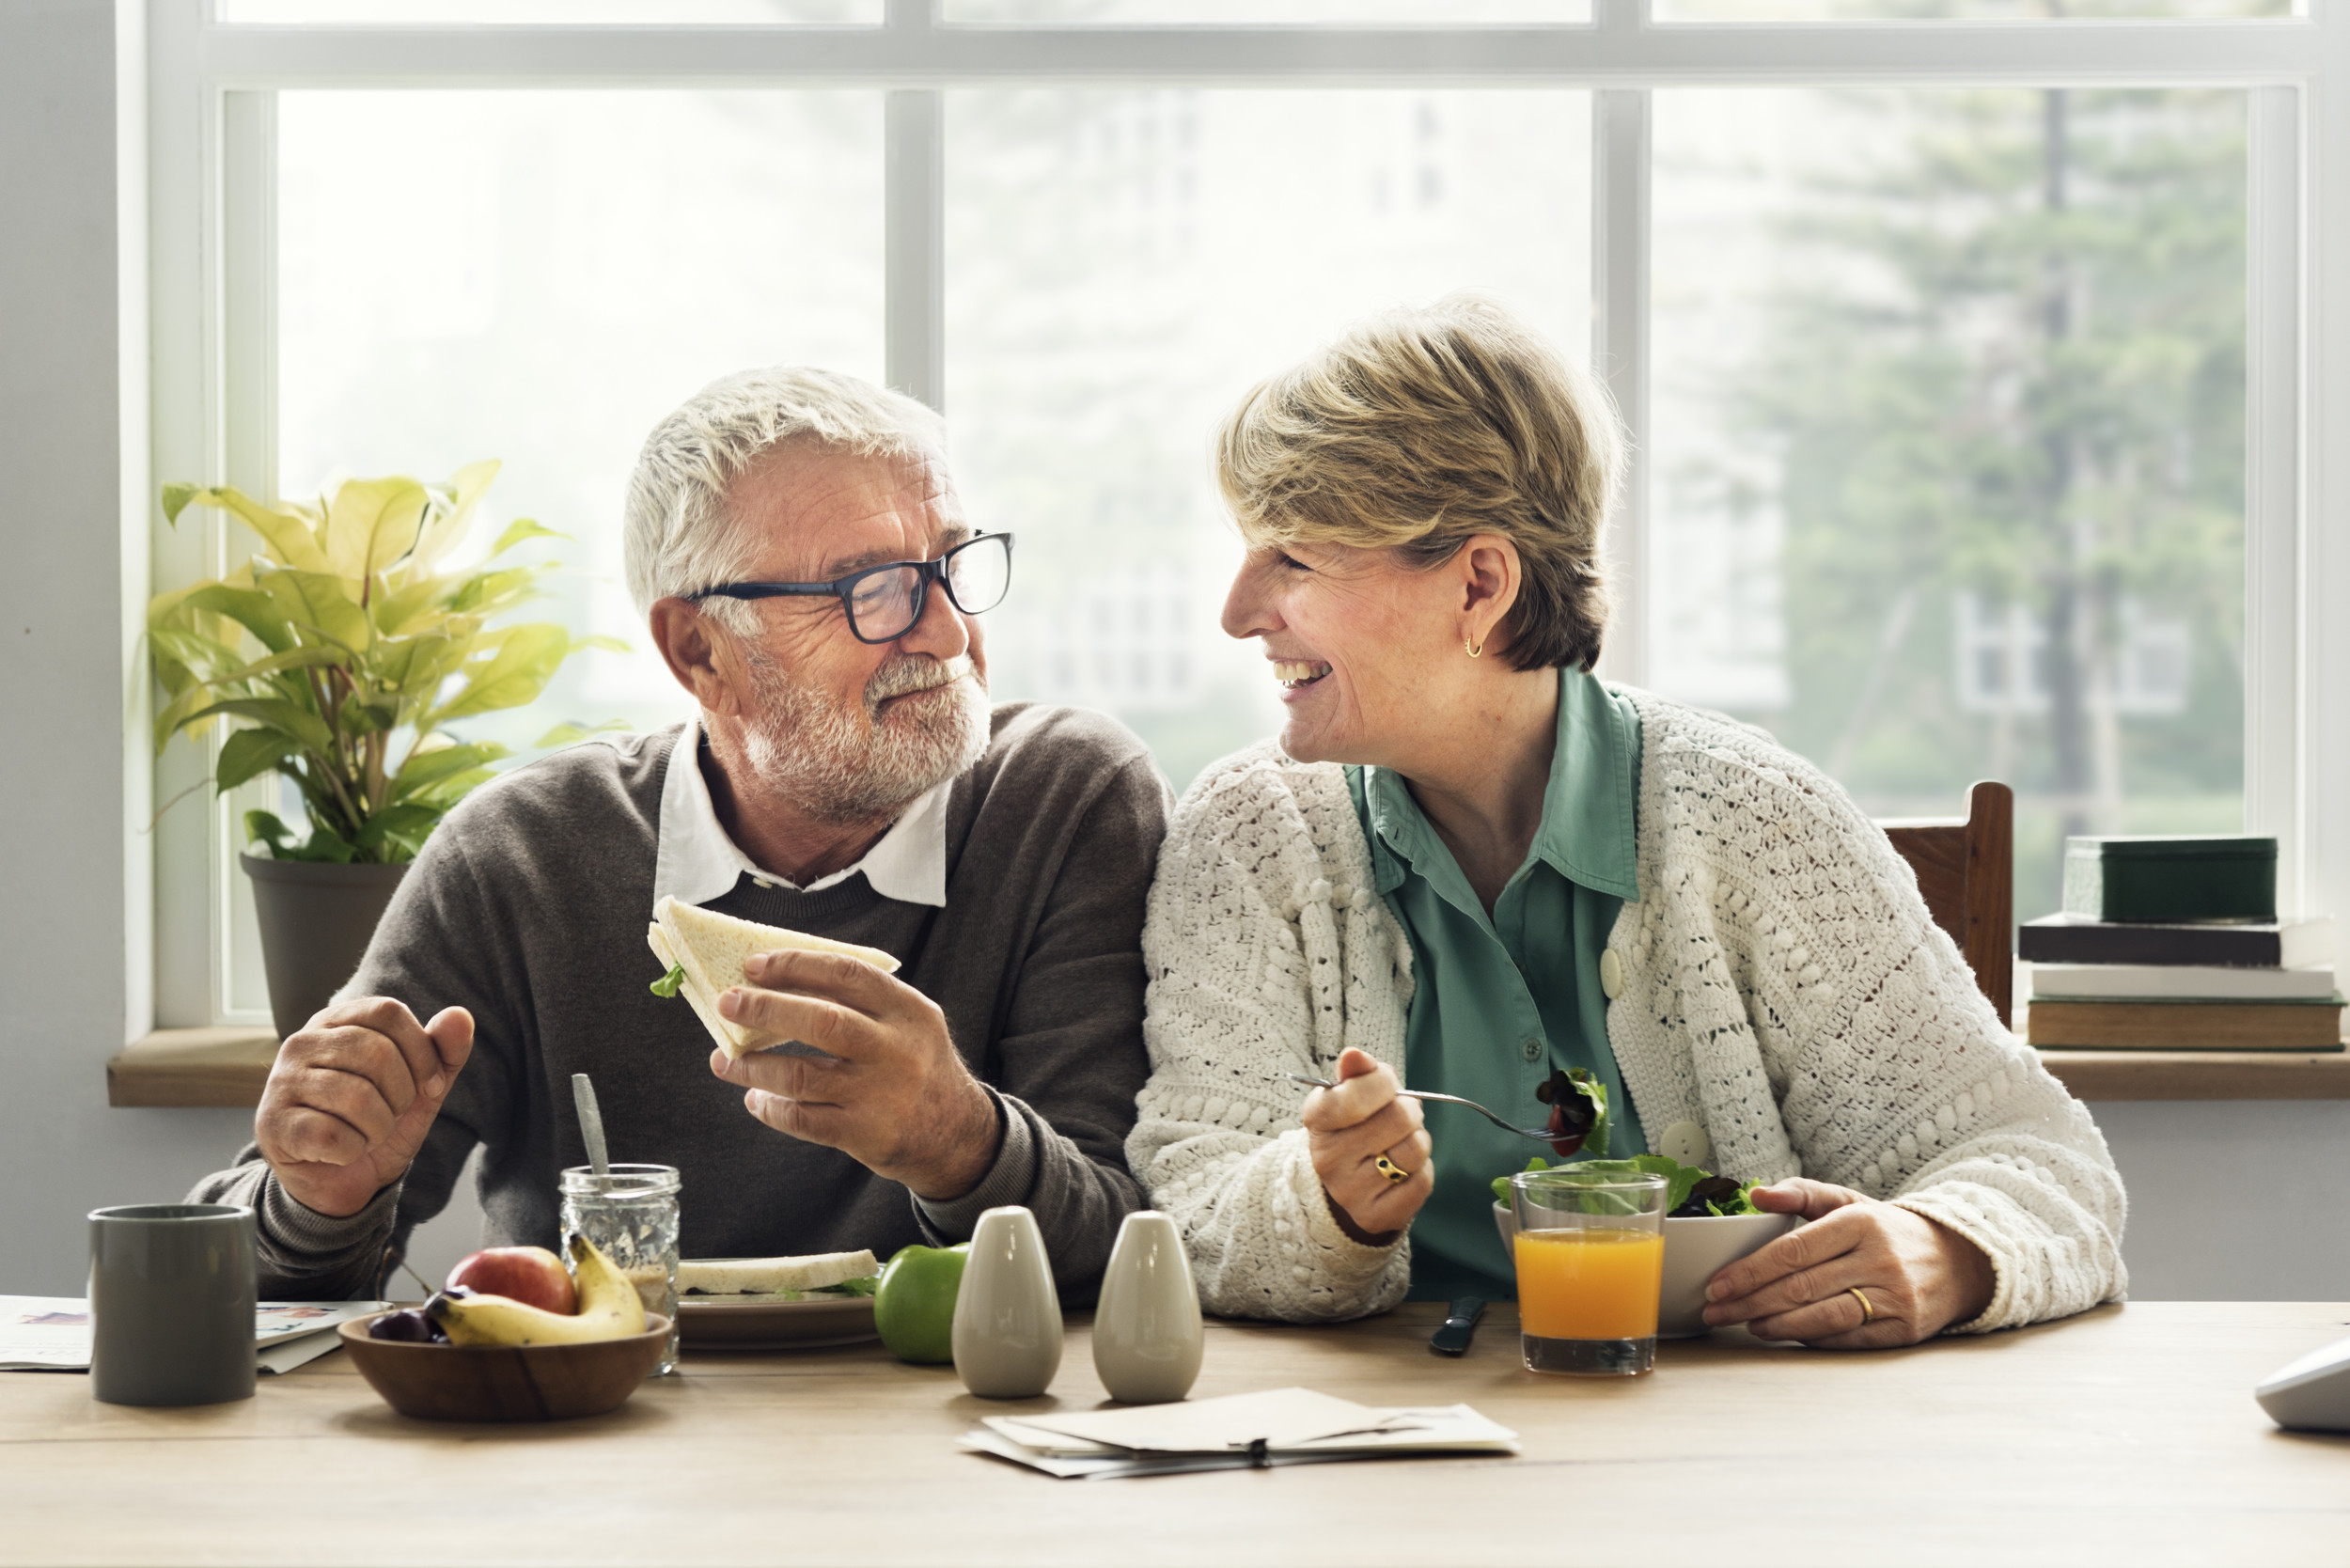 6 things married couples should talk about when planning for retirement